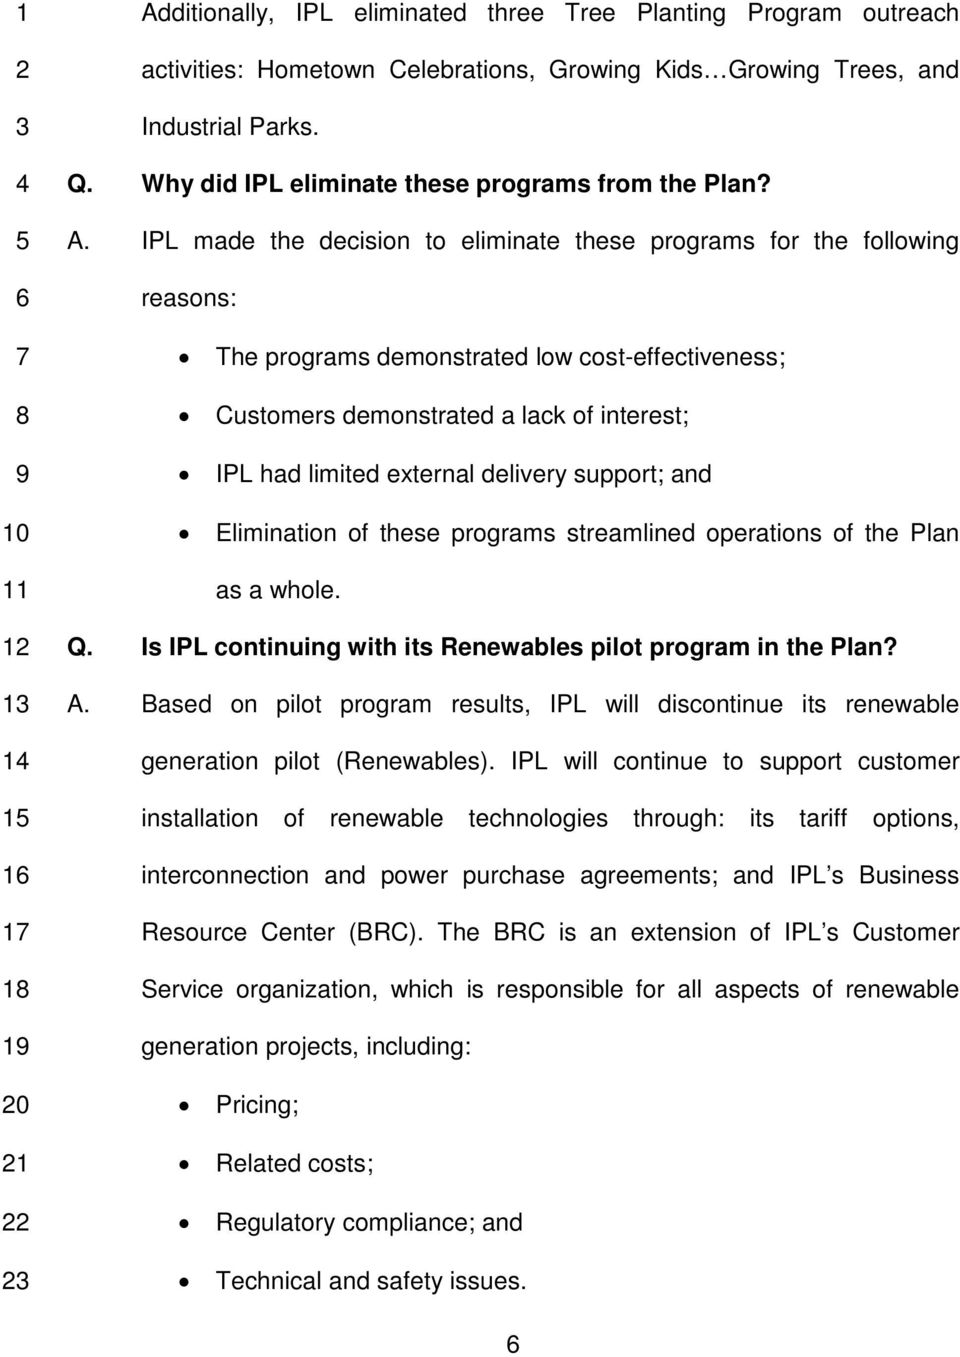 IPL made the decision to eliminate these programs for the following reasons: The programs demonstrated low cost-effectiveness; Customers demonstrated a lack of interest; IPL had limited external